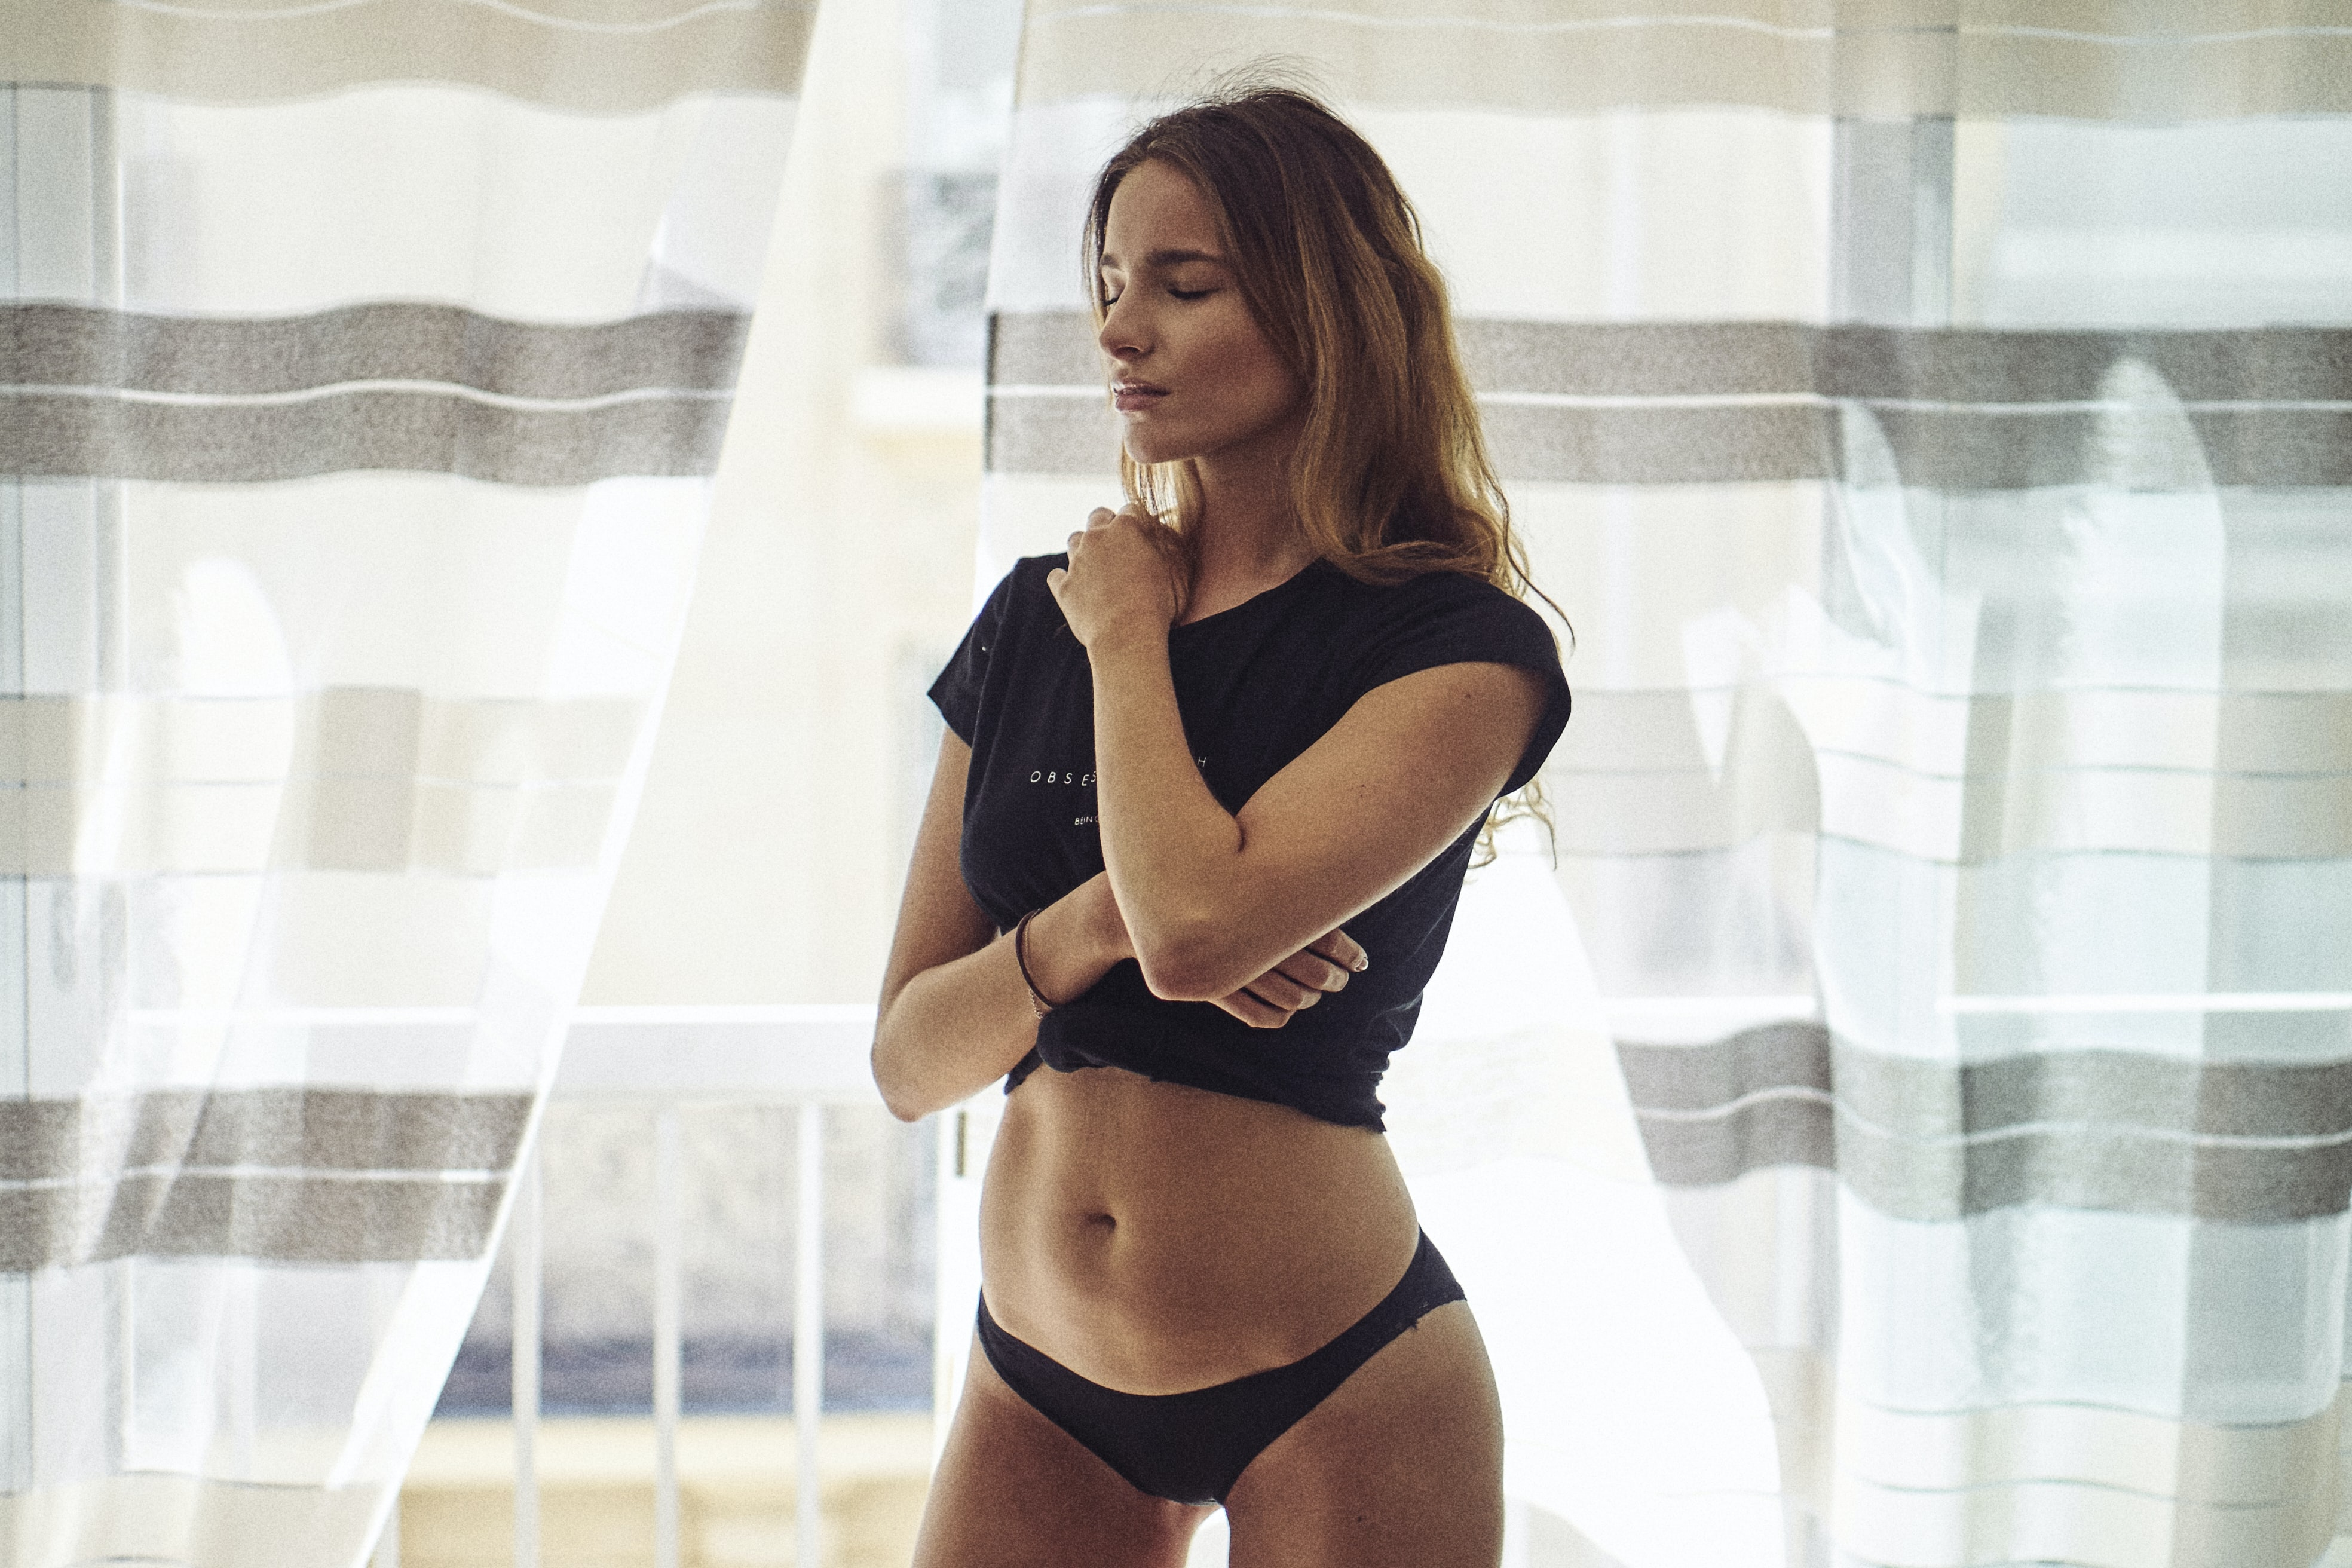 A woman wearing a black crop top and underwear with closed eyes in front of a curtain